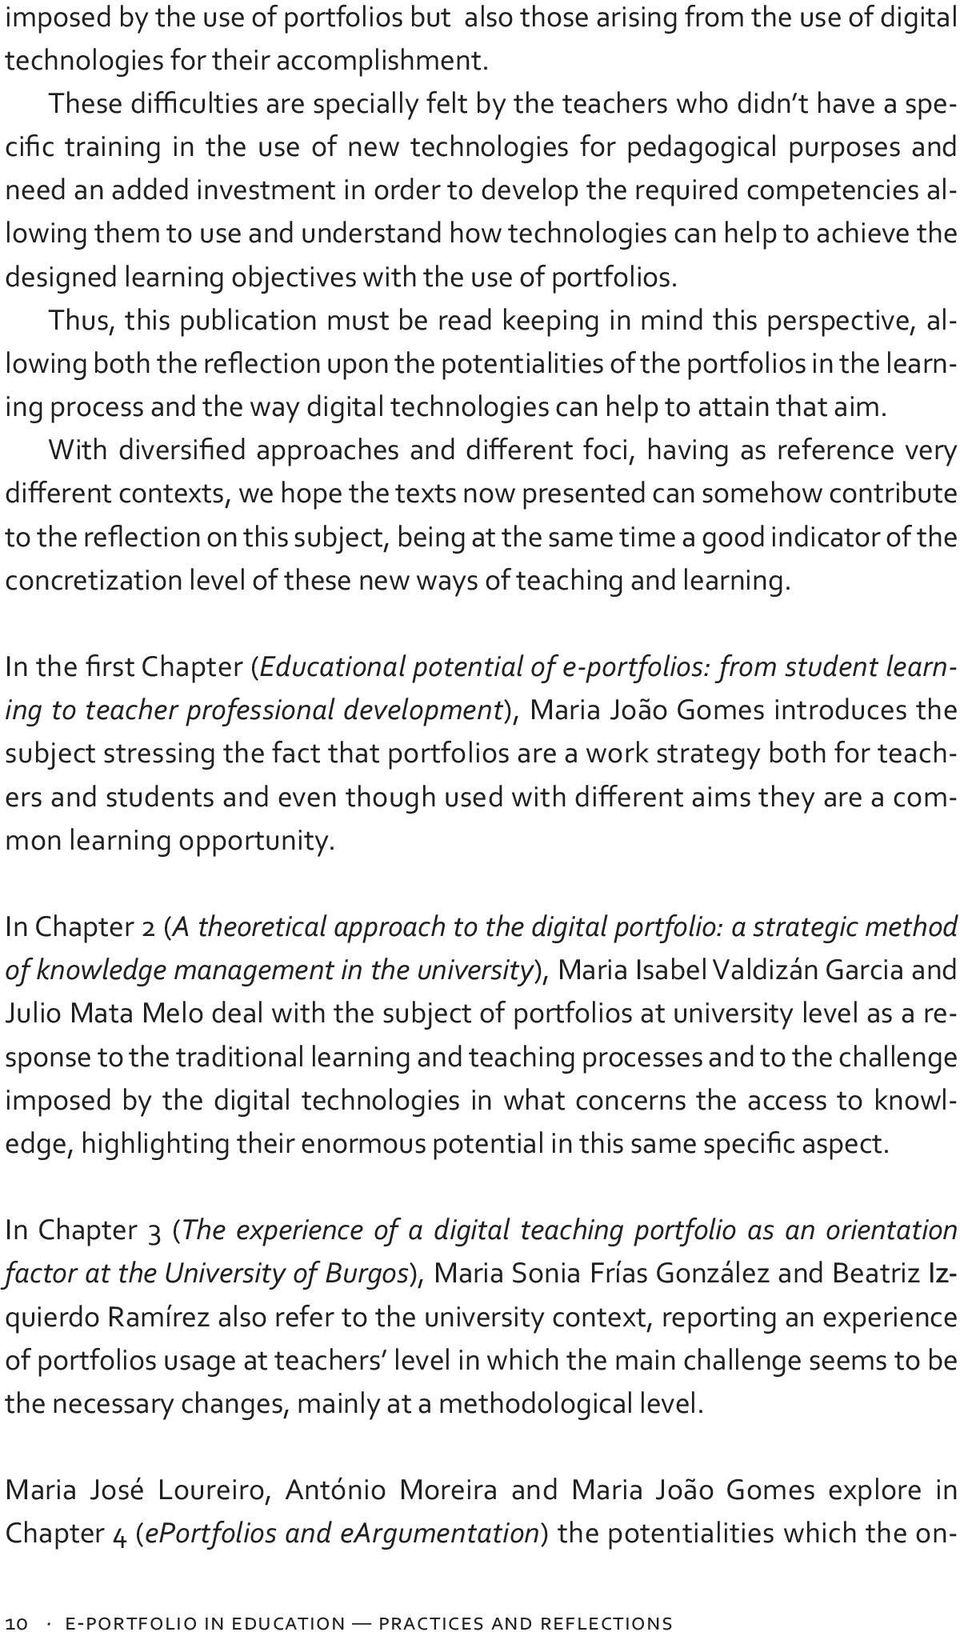 required competencies allowing them to use and understand how technologies can help to achieve the designed learning objectives with the use of portfolios.